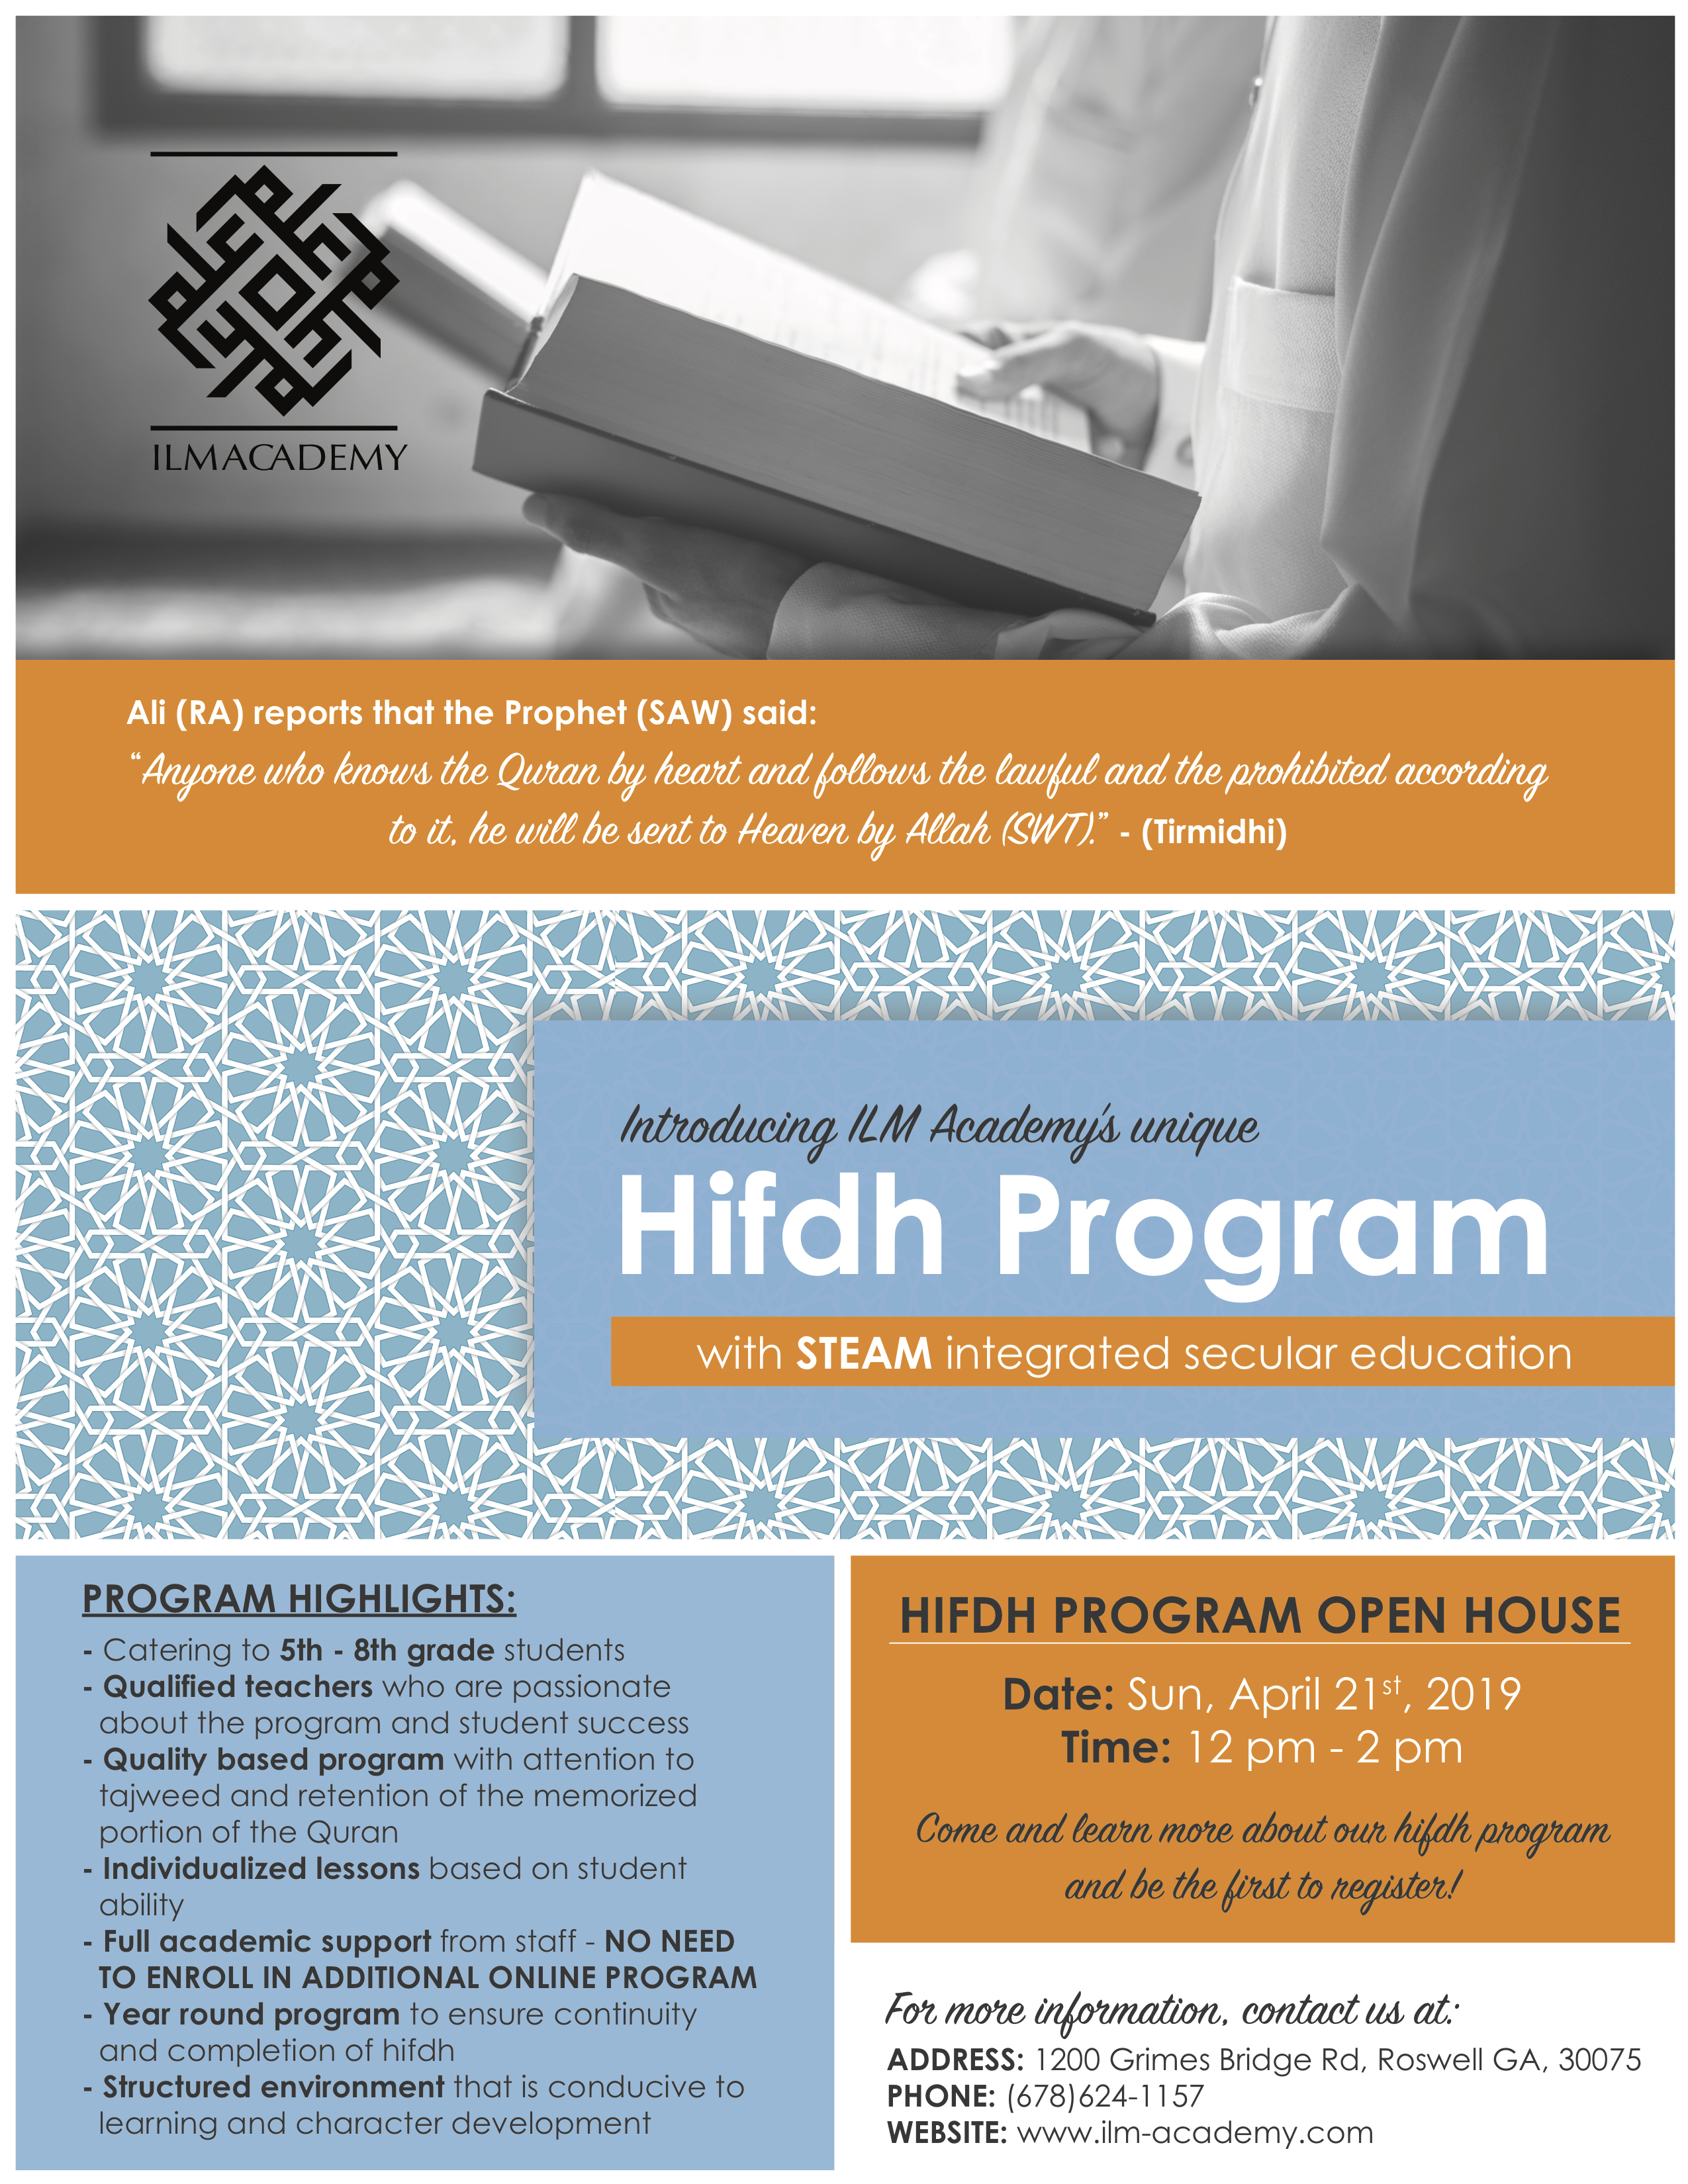 ILM Academy Hifdh Program